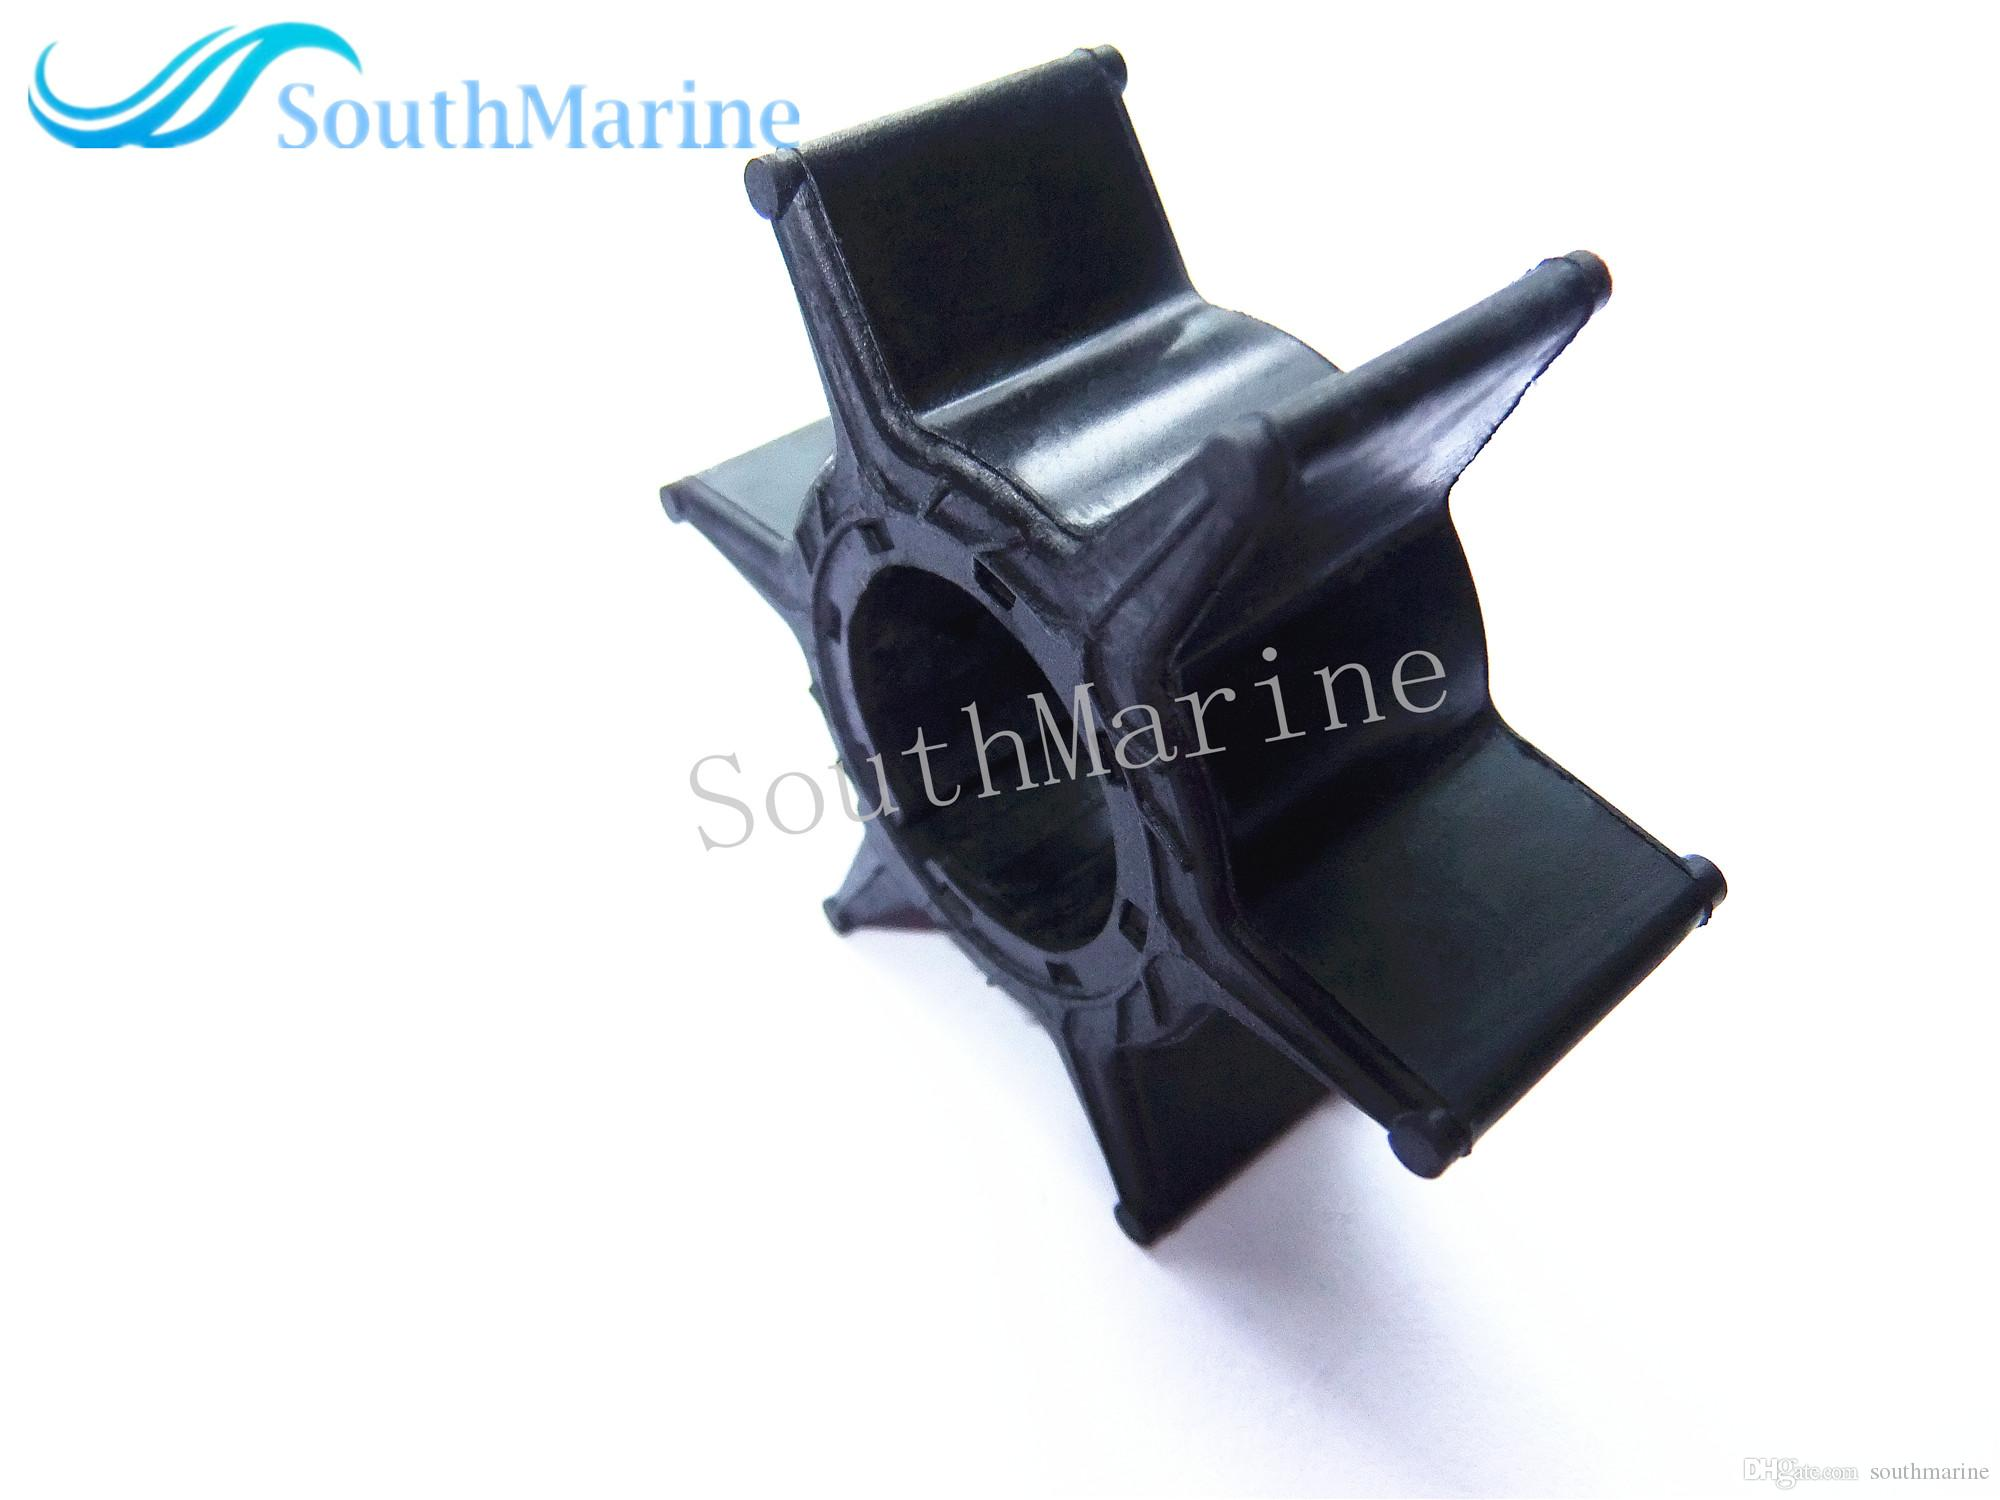 6H3-44352-00 Impeller 697-44352-00 for Yamaha 40hp 50hp 55hp 60hp 70hp Outboard